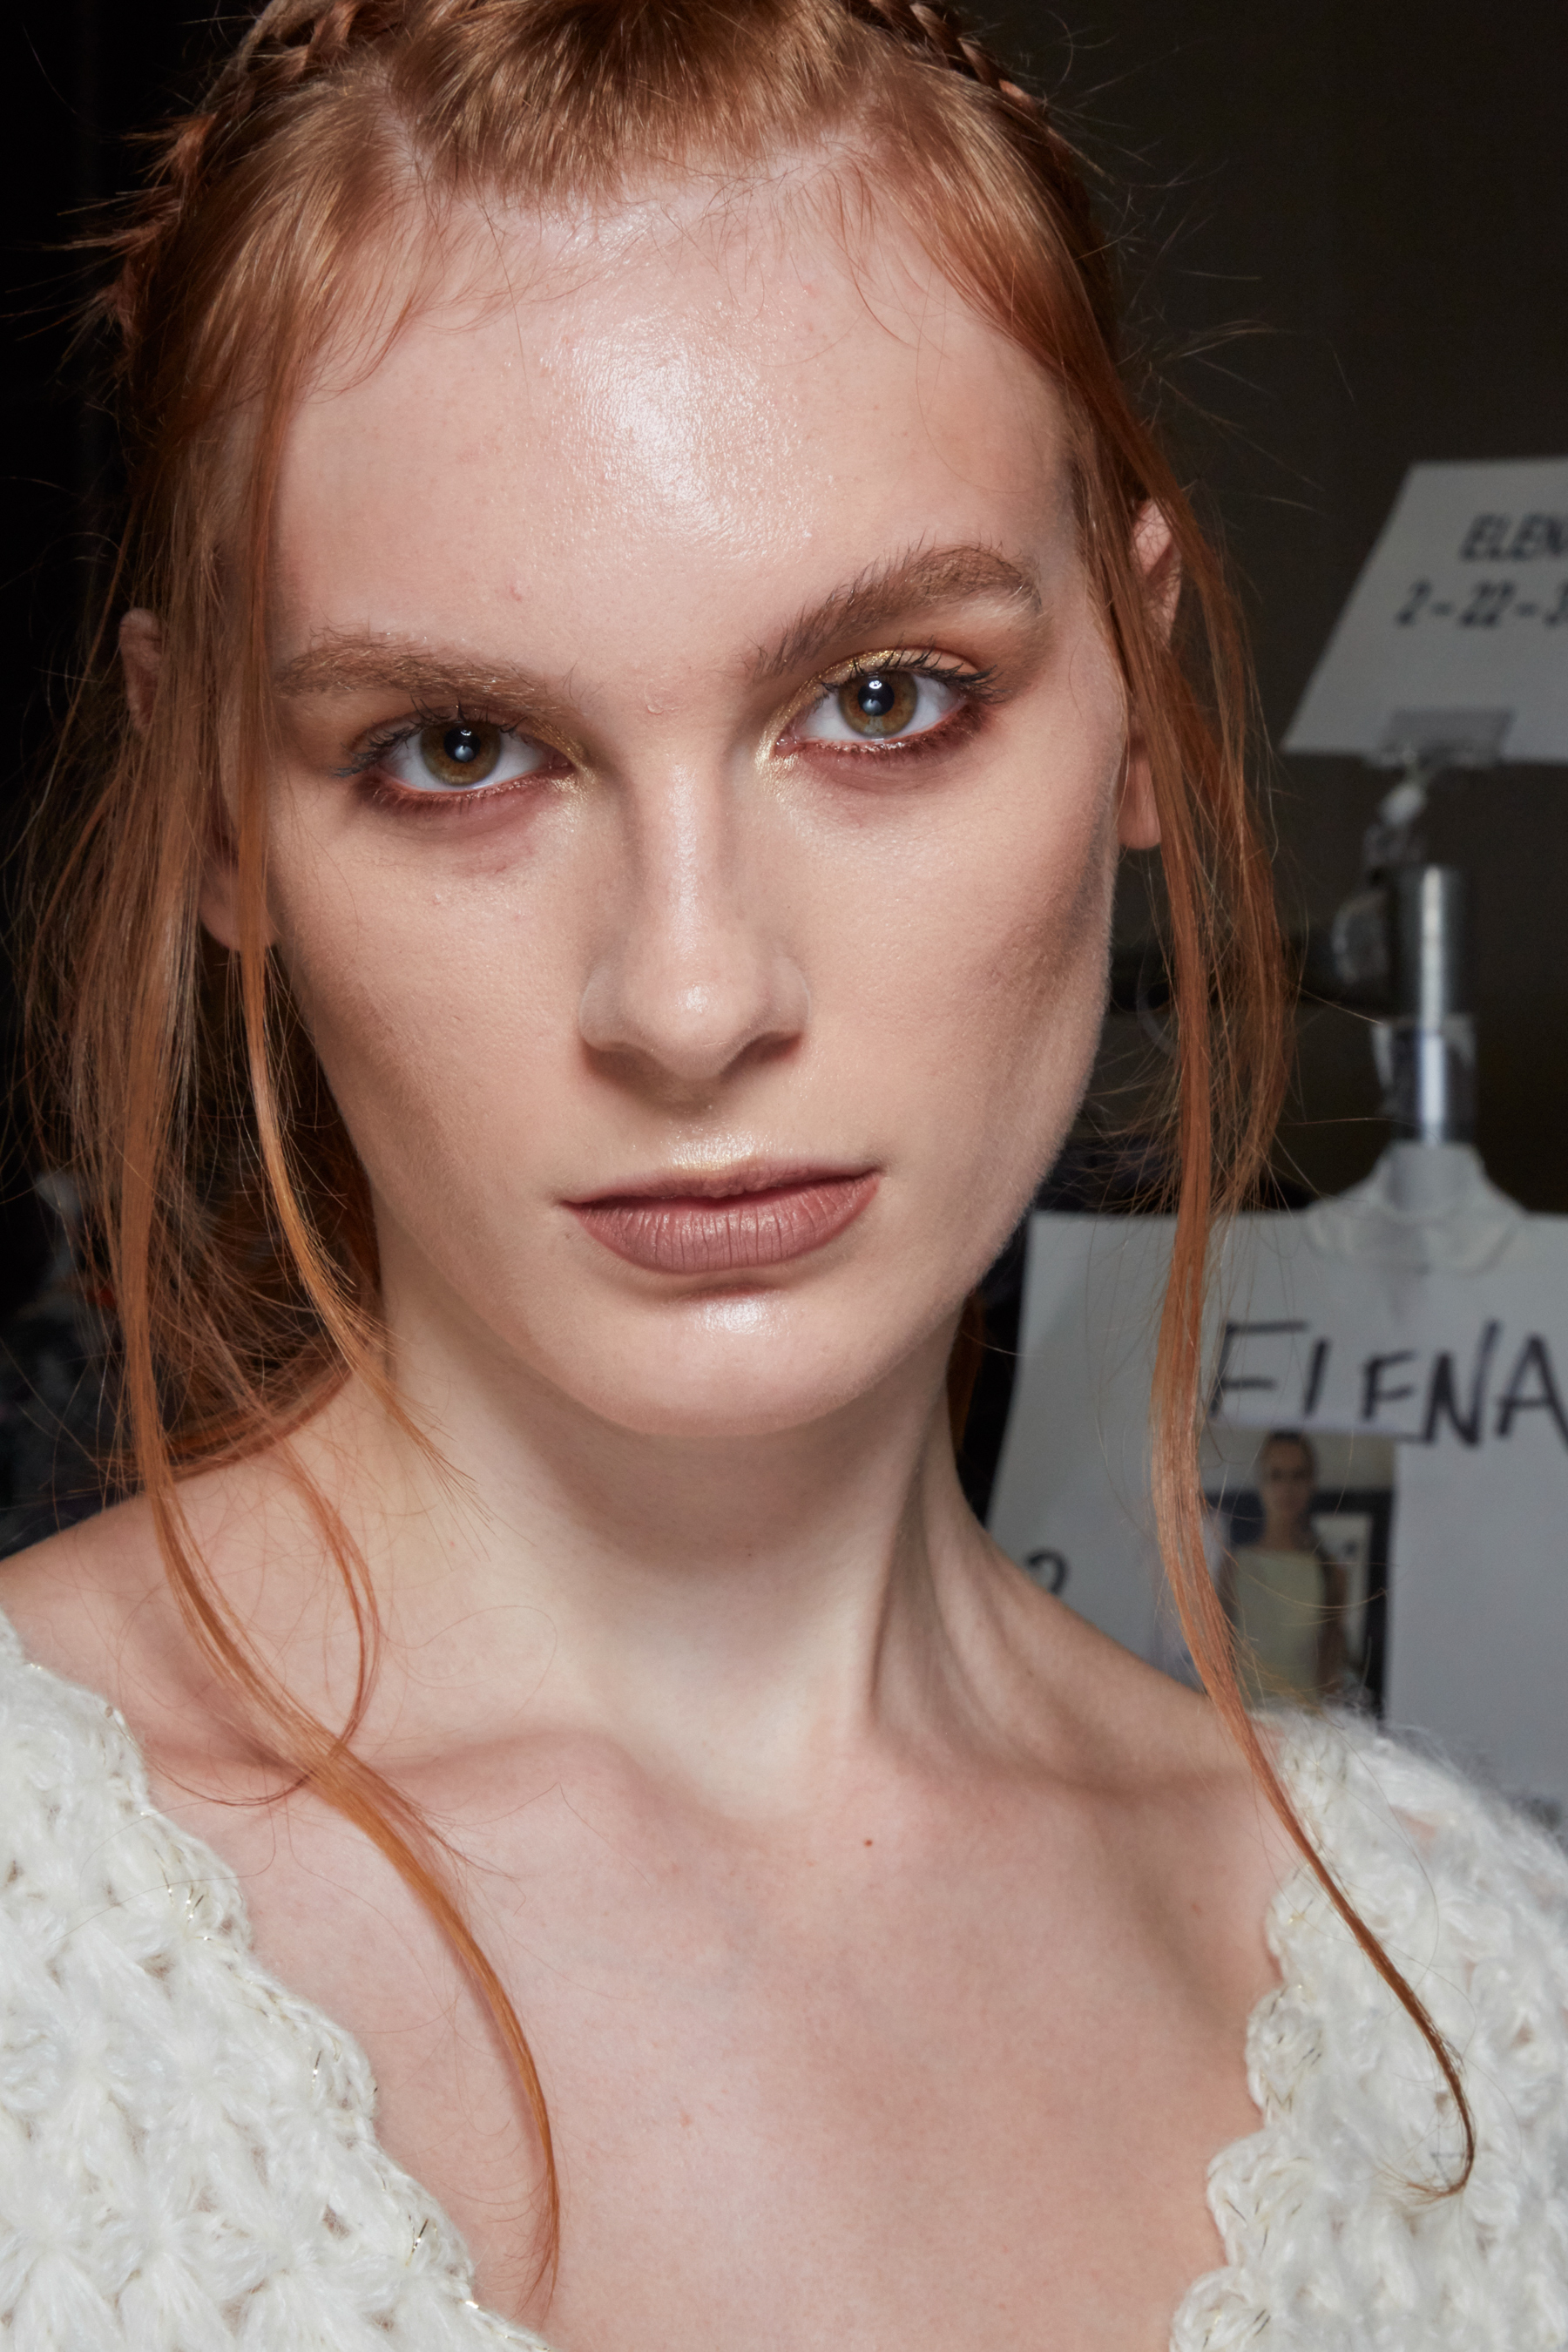 Frederick Anderson Spring 2022 Backstage Fashion Show